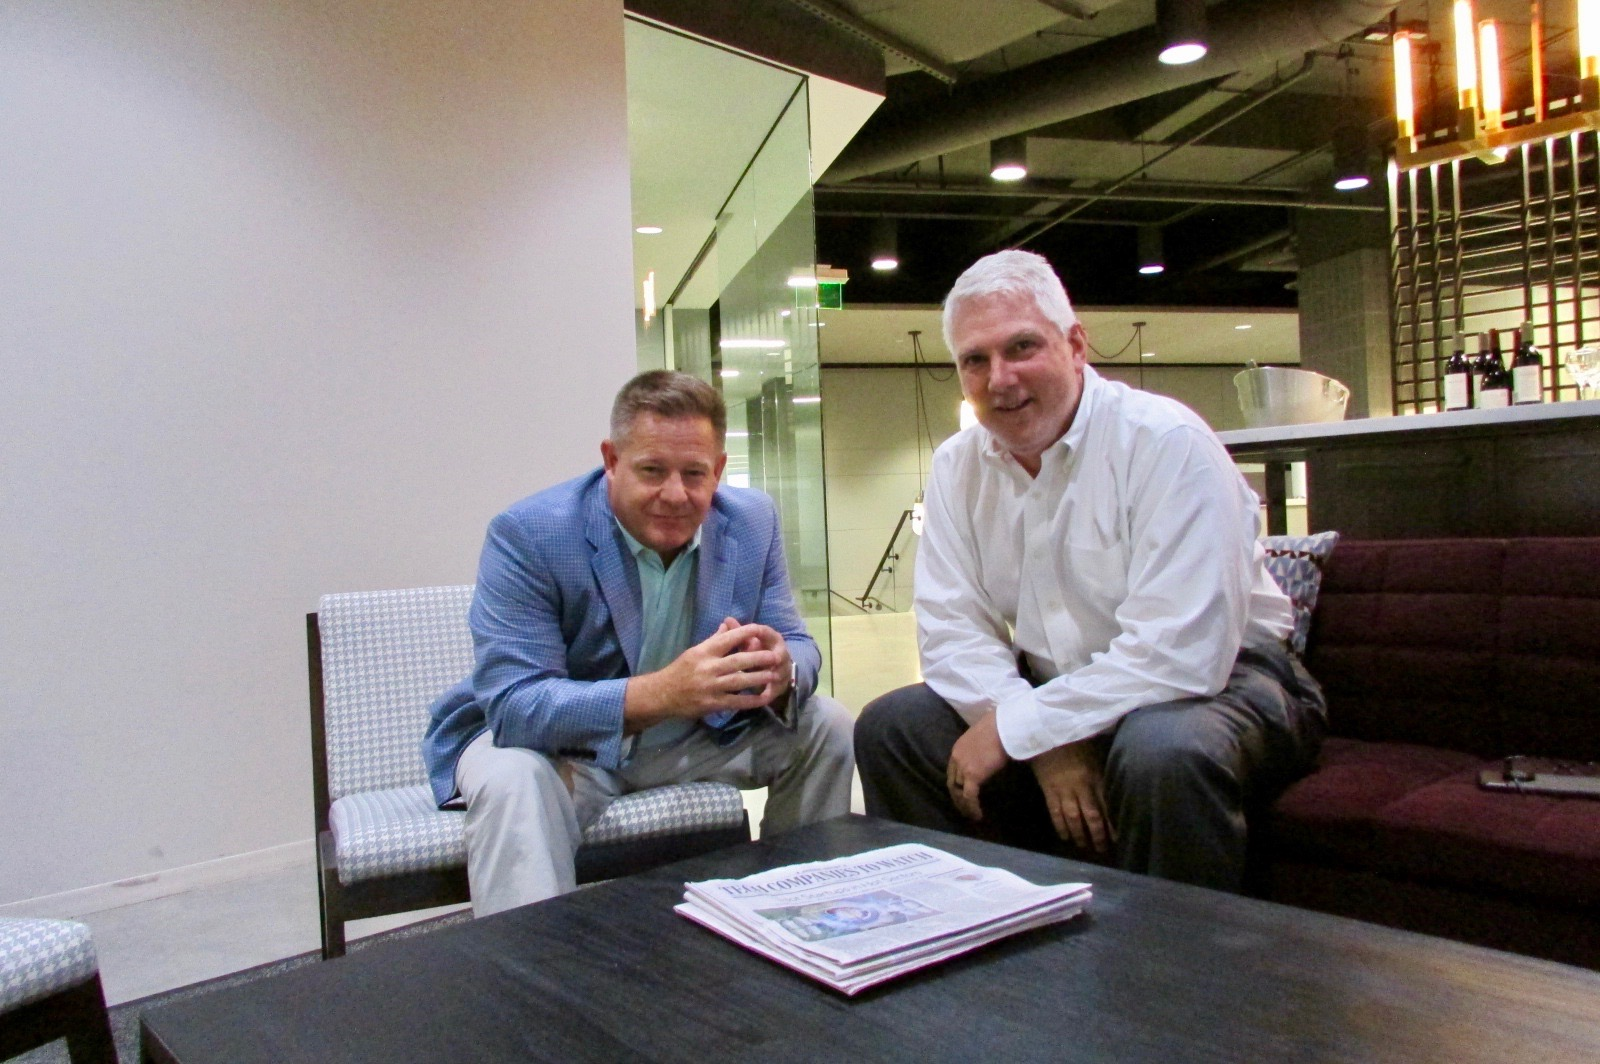 Founders, Marc Taylor (Left) and Joe English (Right), Scott Duma not pictured.